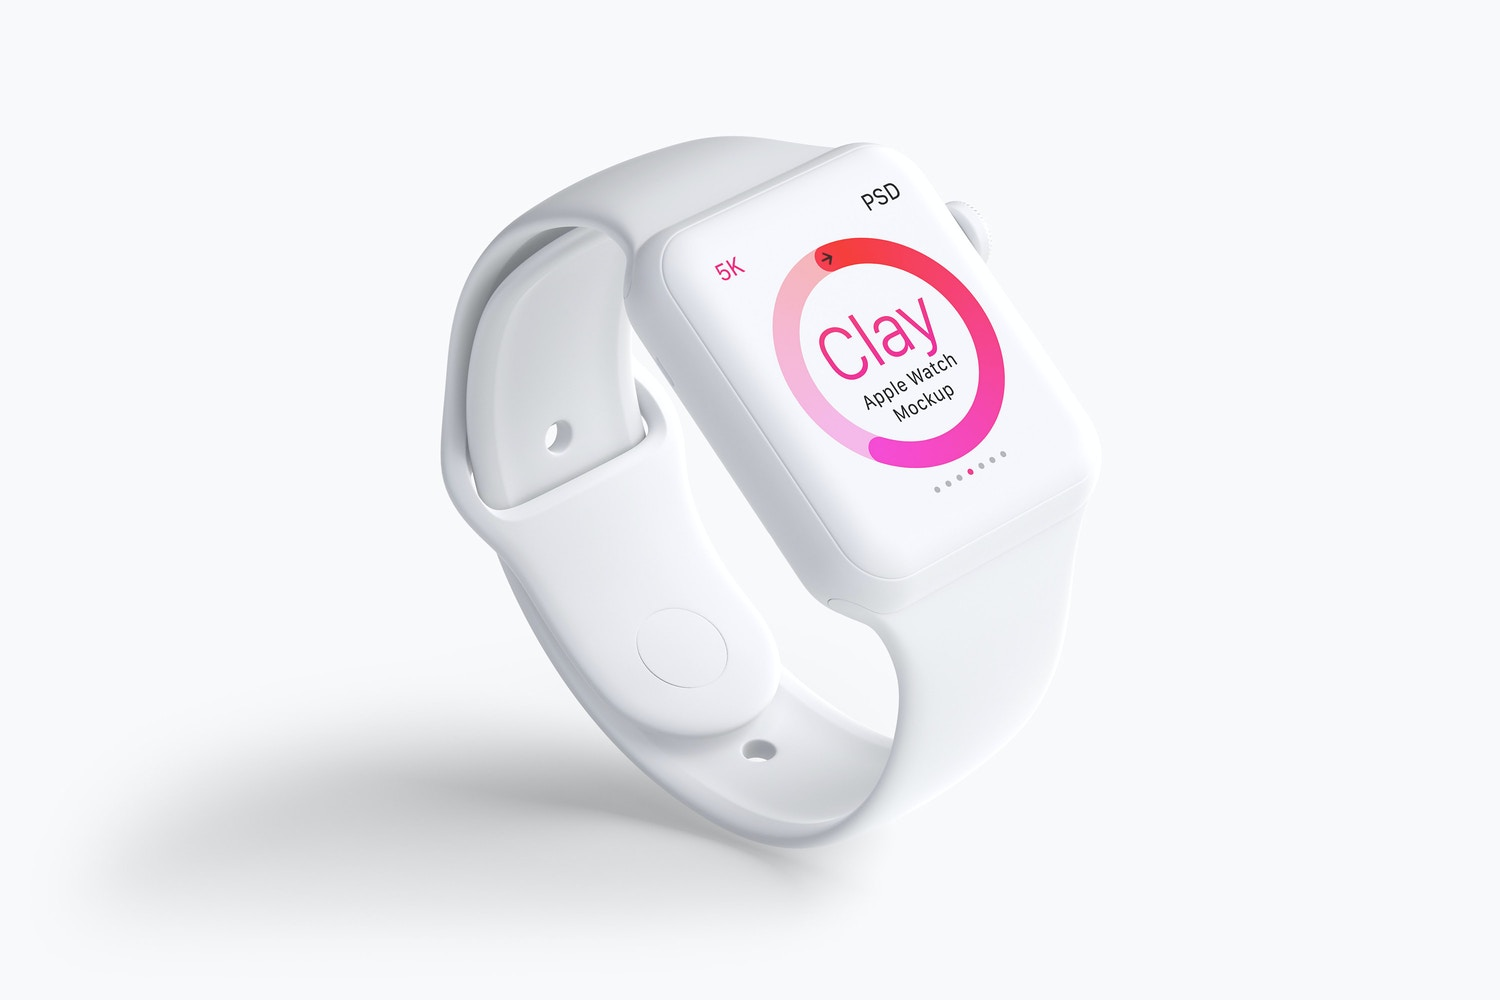 Clay Apple Watch Mockup 01 by Original Mockups on Original Mockups